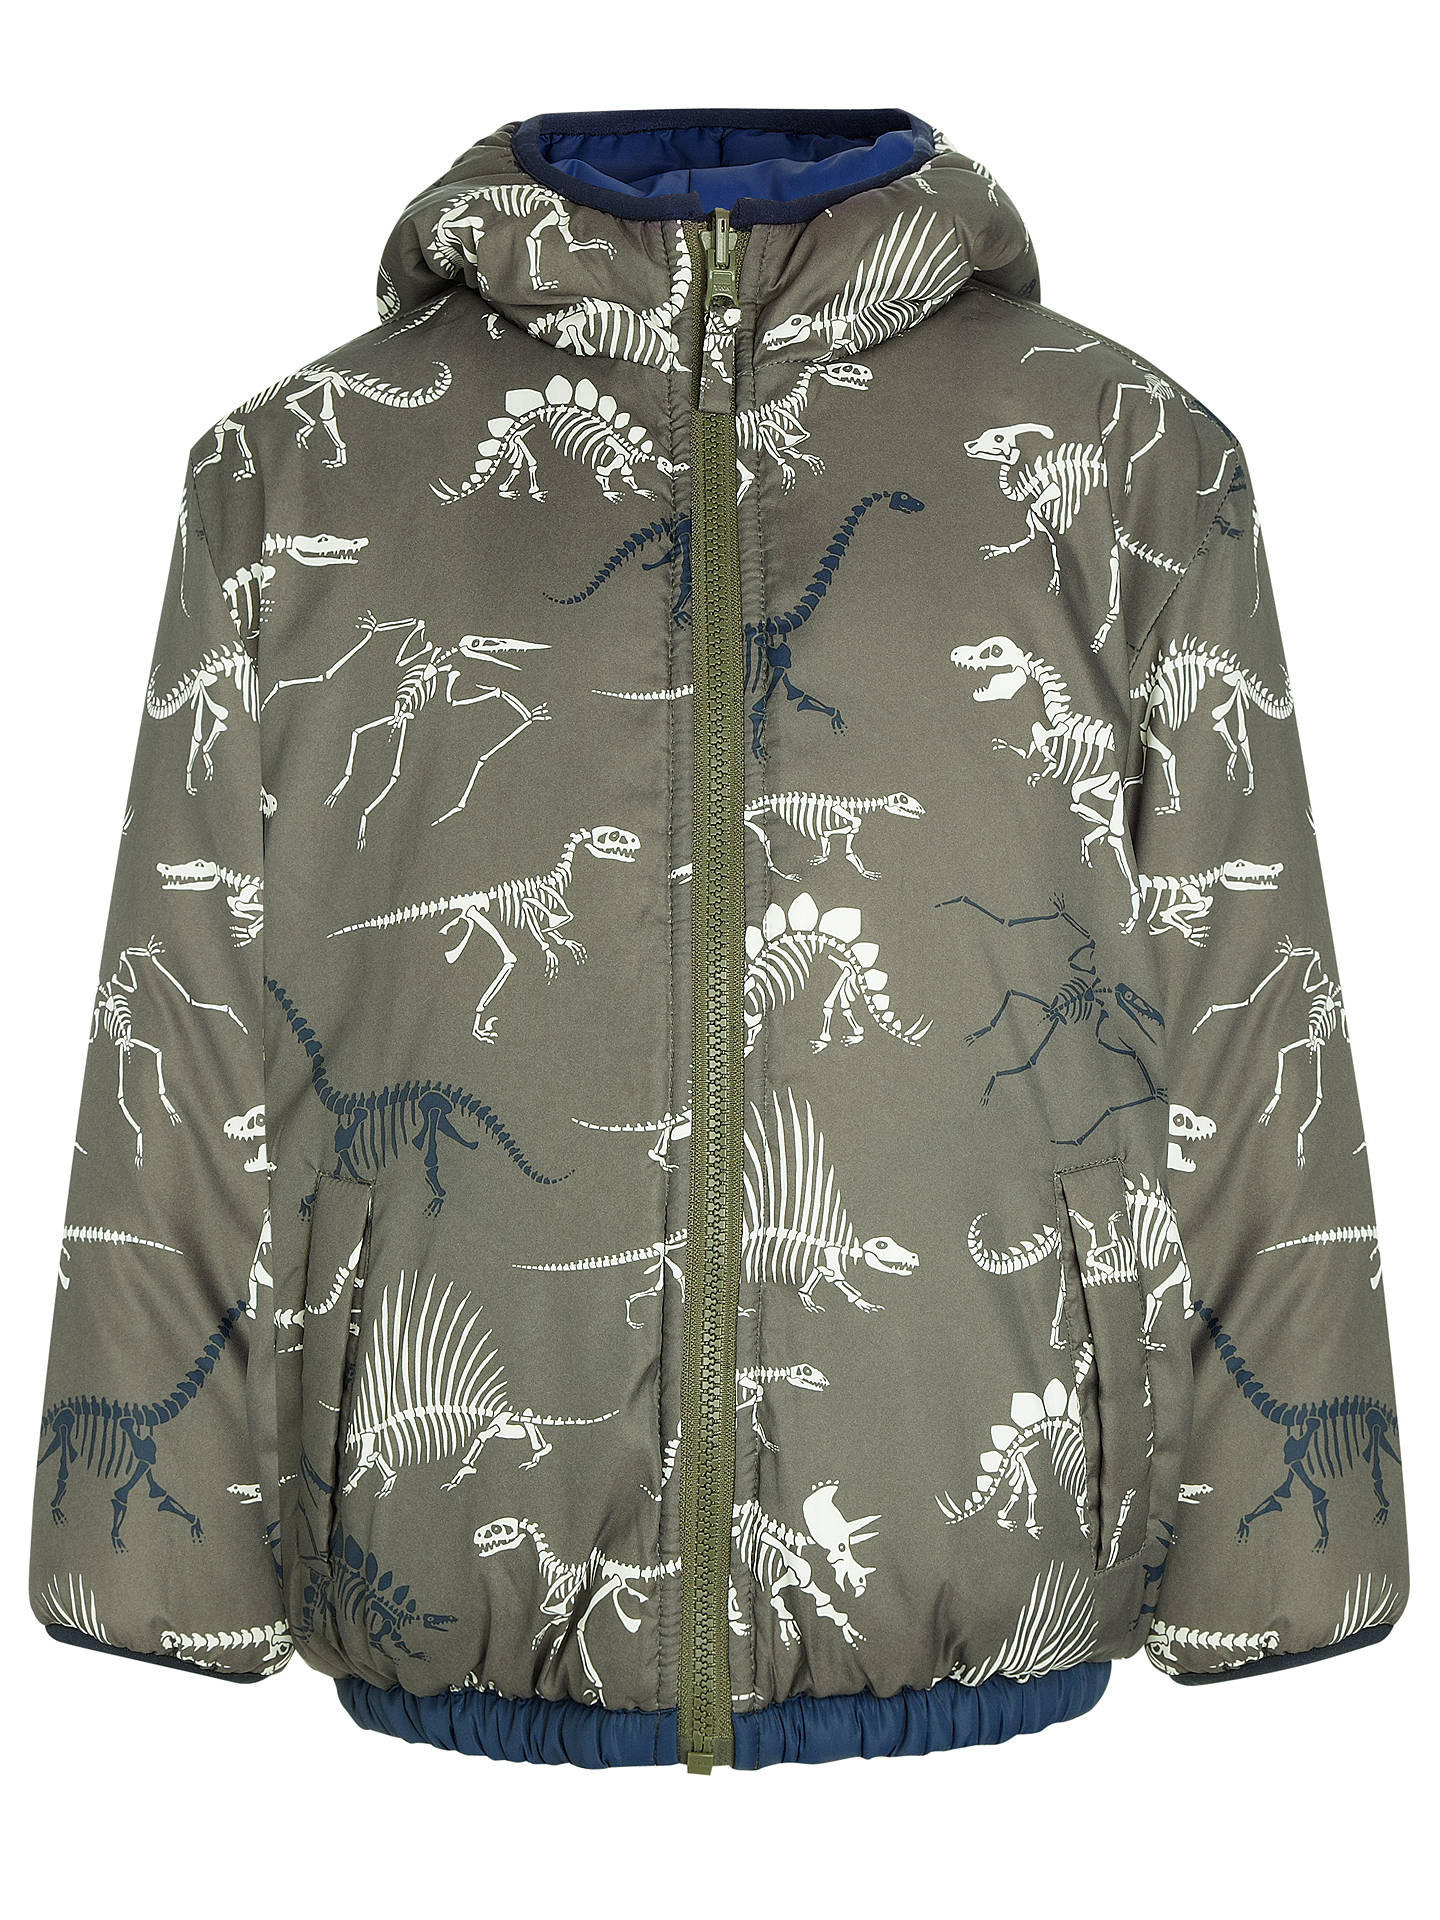 0bb127d1e84f Hatley Boys  Reversible Dino Padded Jacket